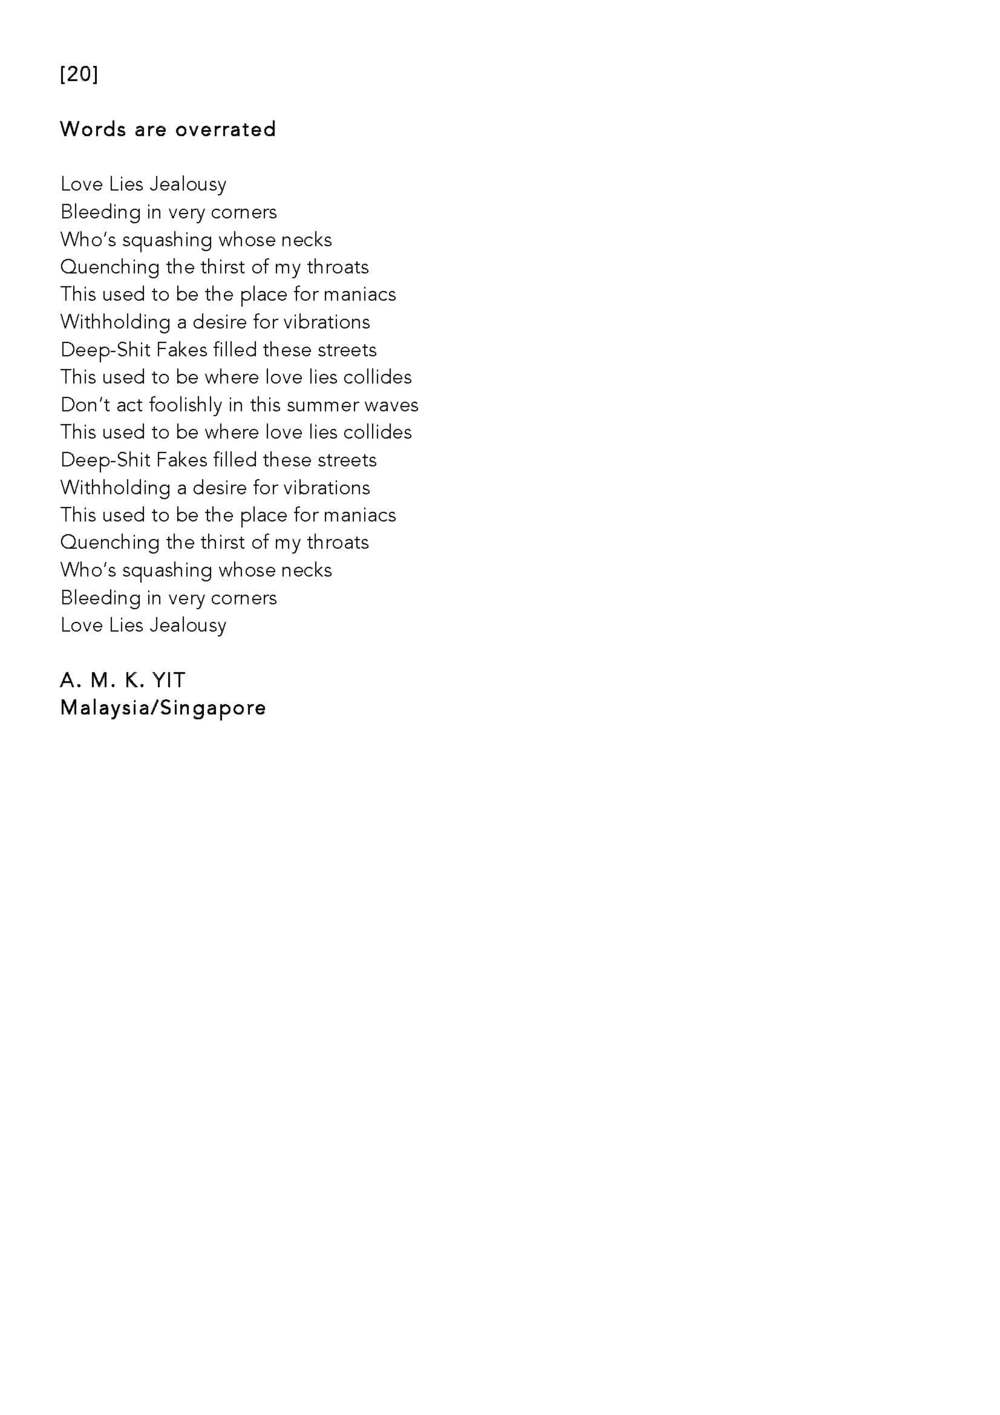 Poetry Collection - Everyone can Poetry _ For 22 June 2014_Page_20.jpg